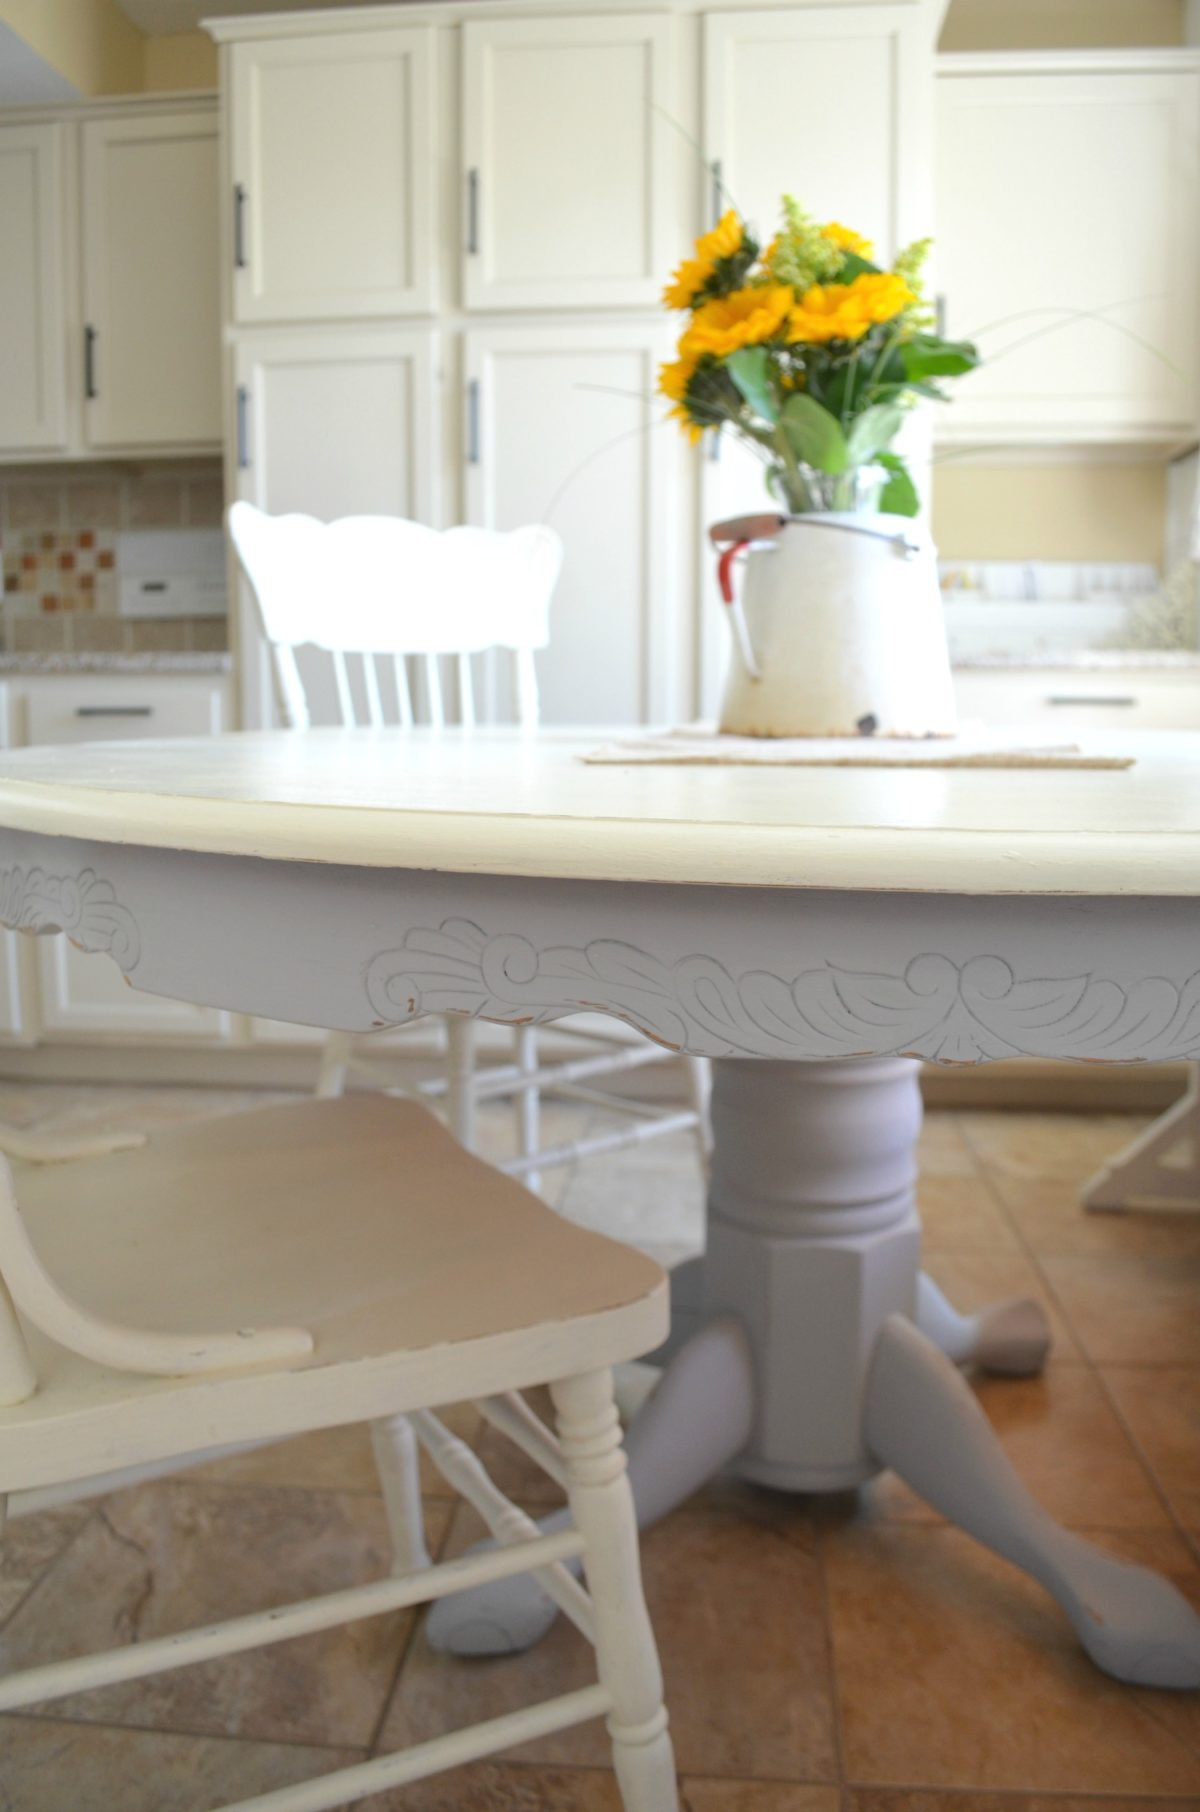 How To Seal A Painted Kitchen Table